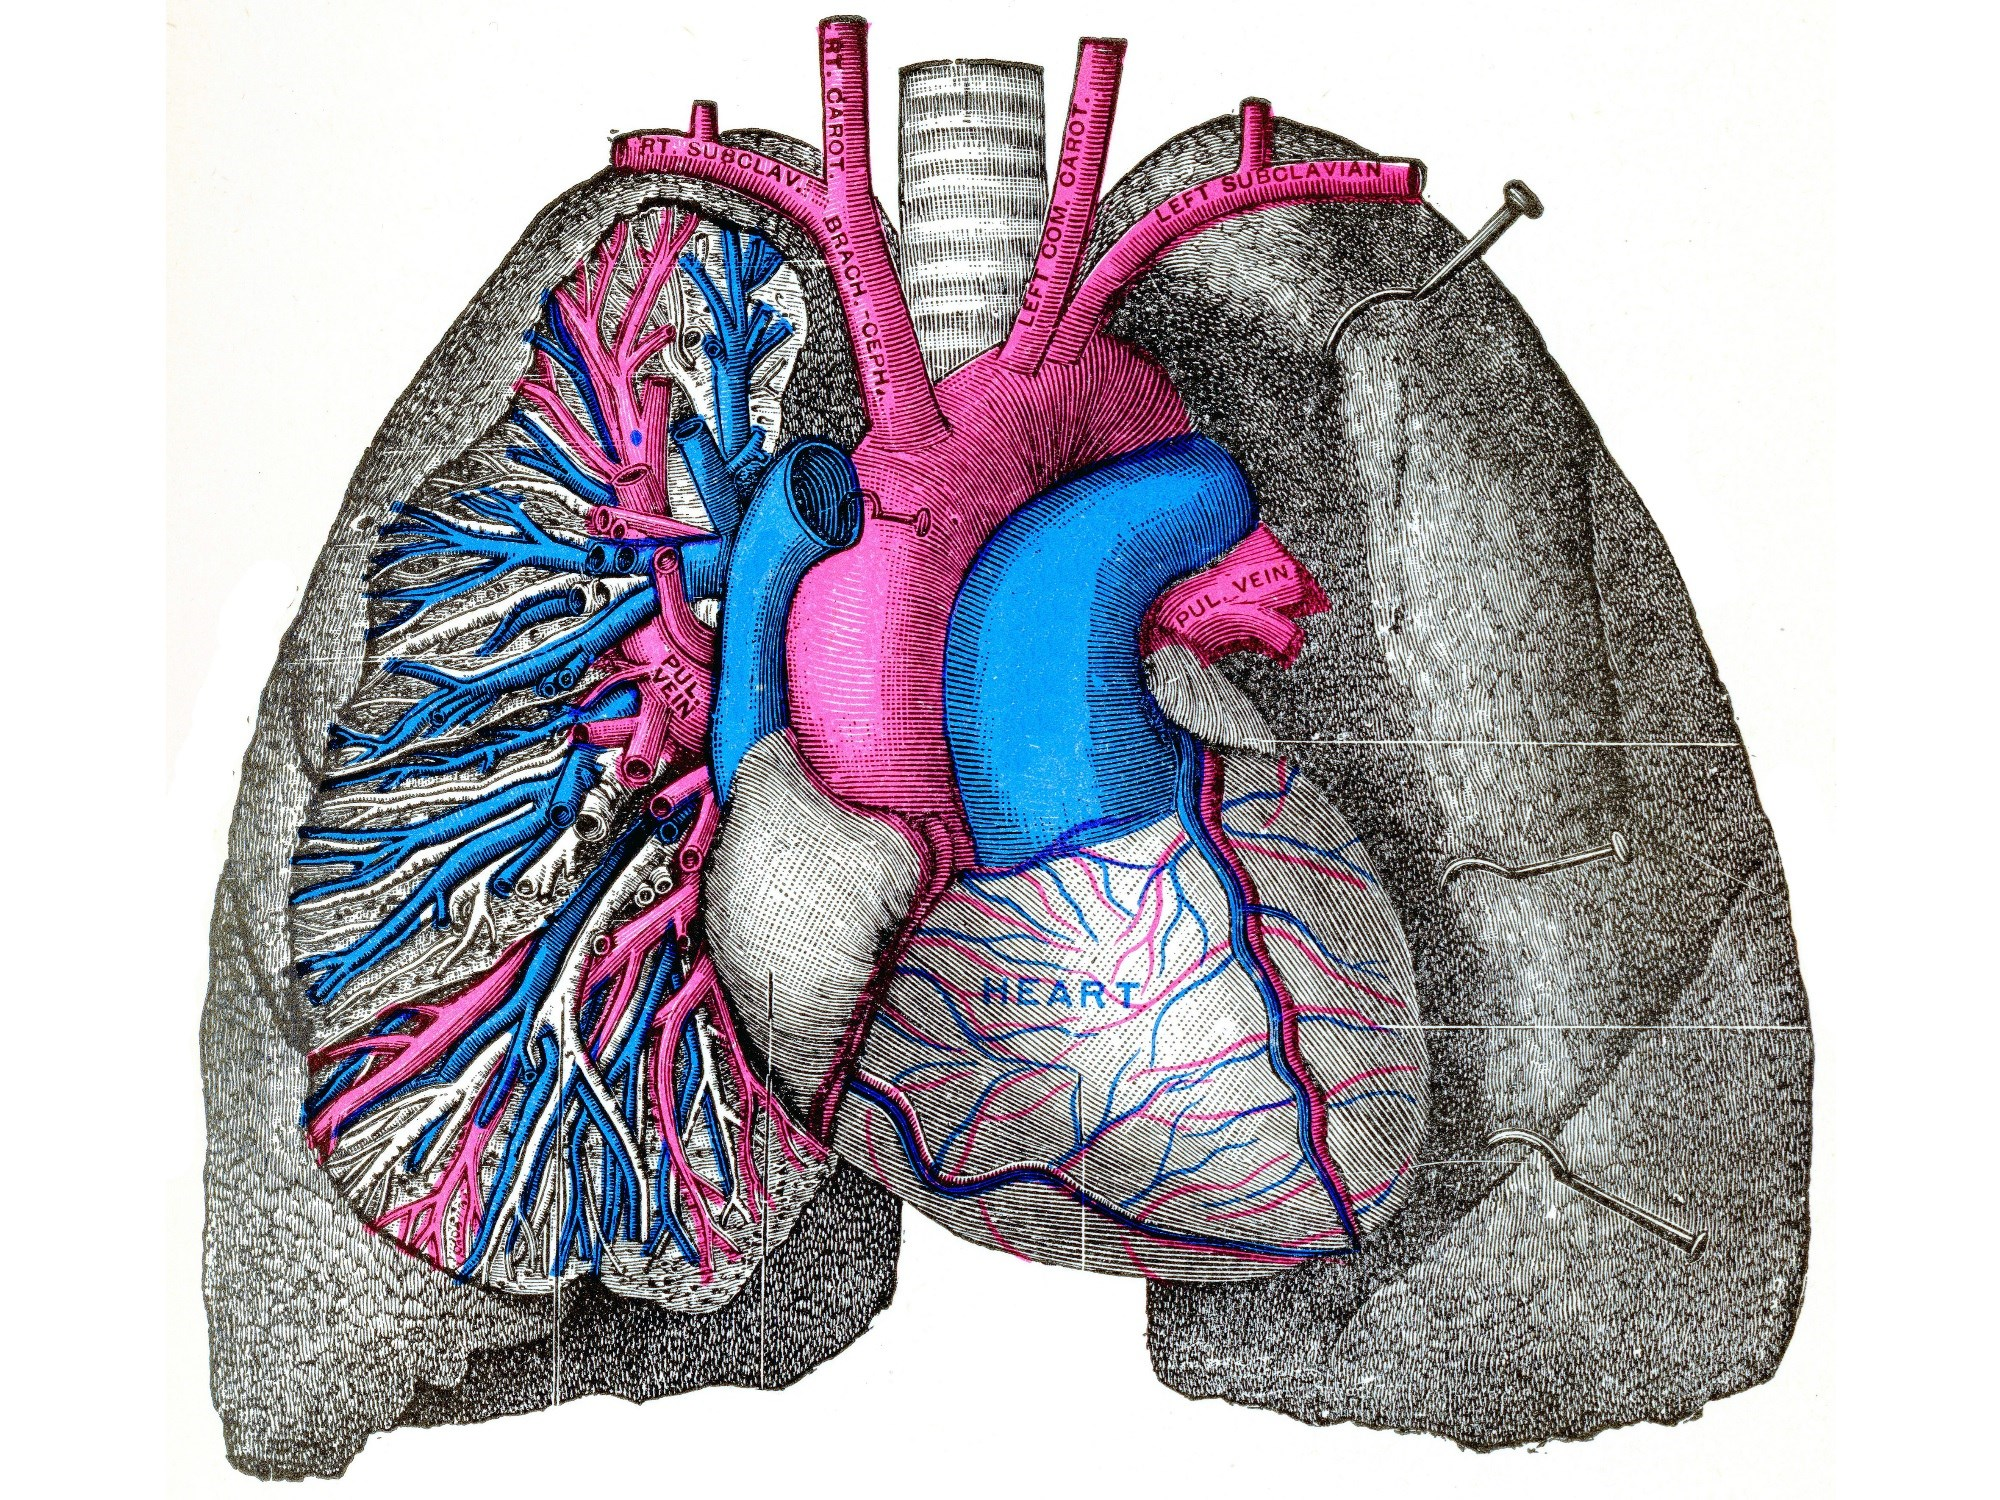 Golden Ratio Between Pulmonary Pressure Components in PAH Identified